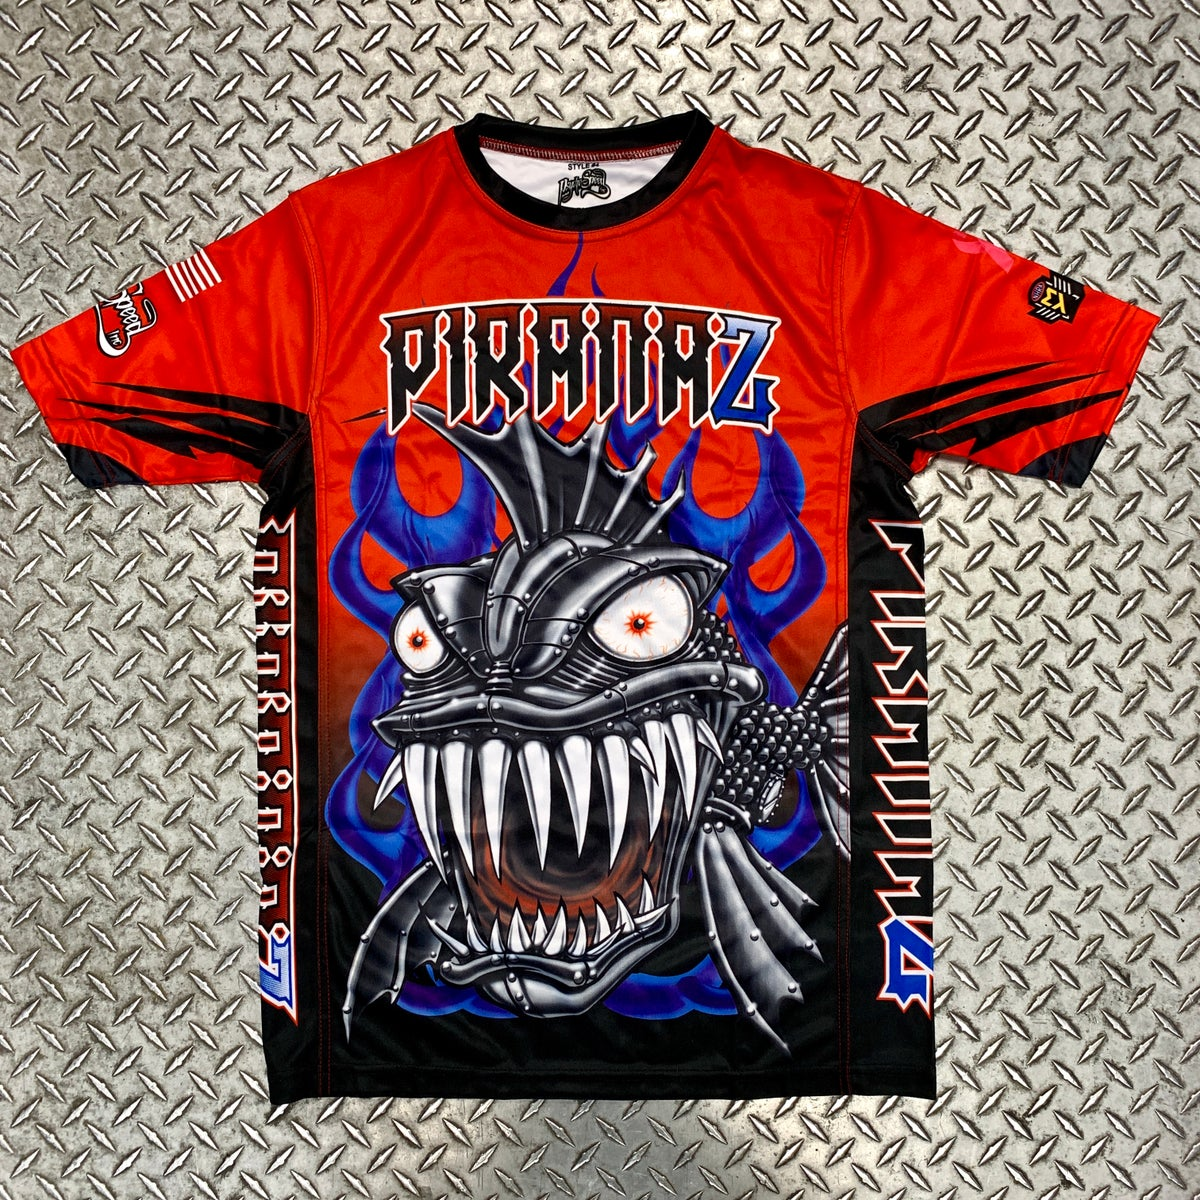 Image of 2019 PIRANAZ RACING TEAM SHIRT